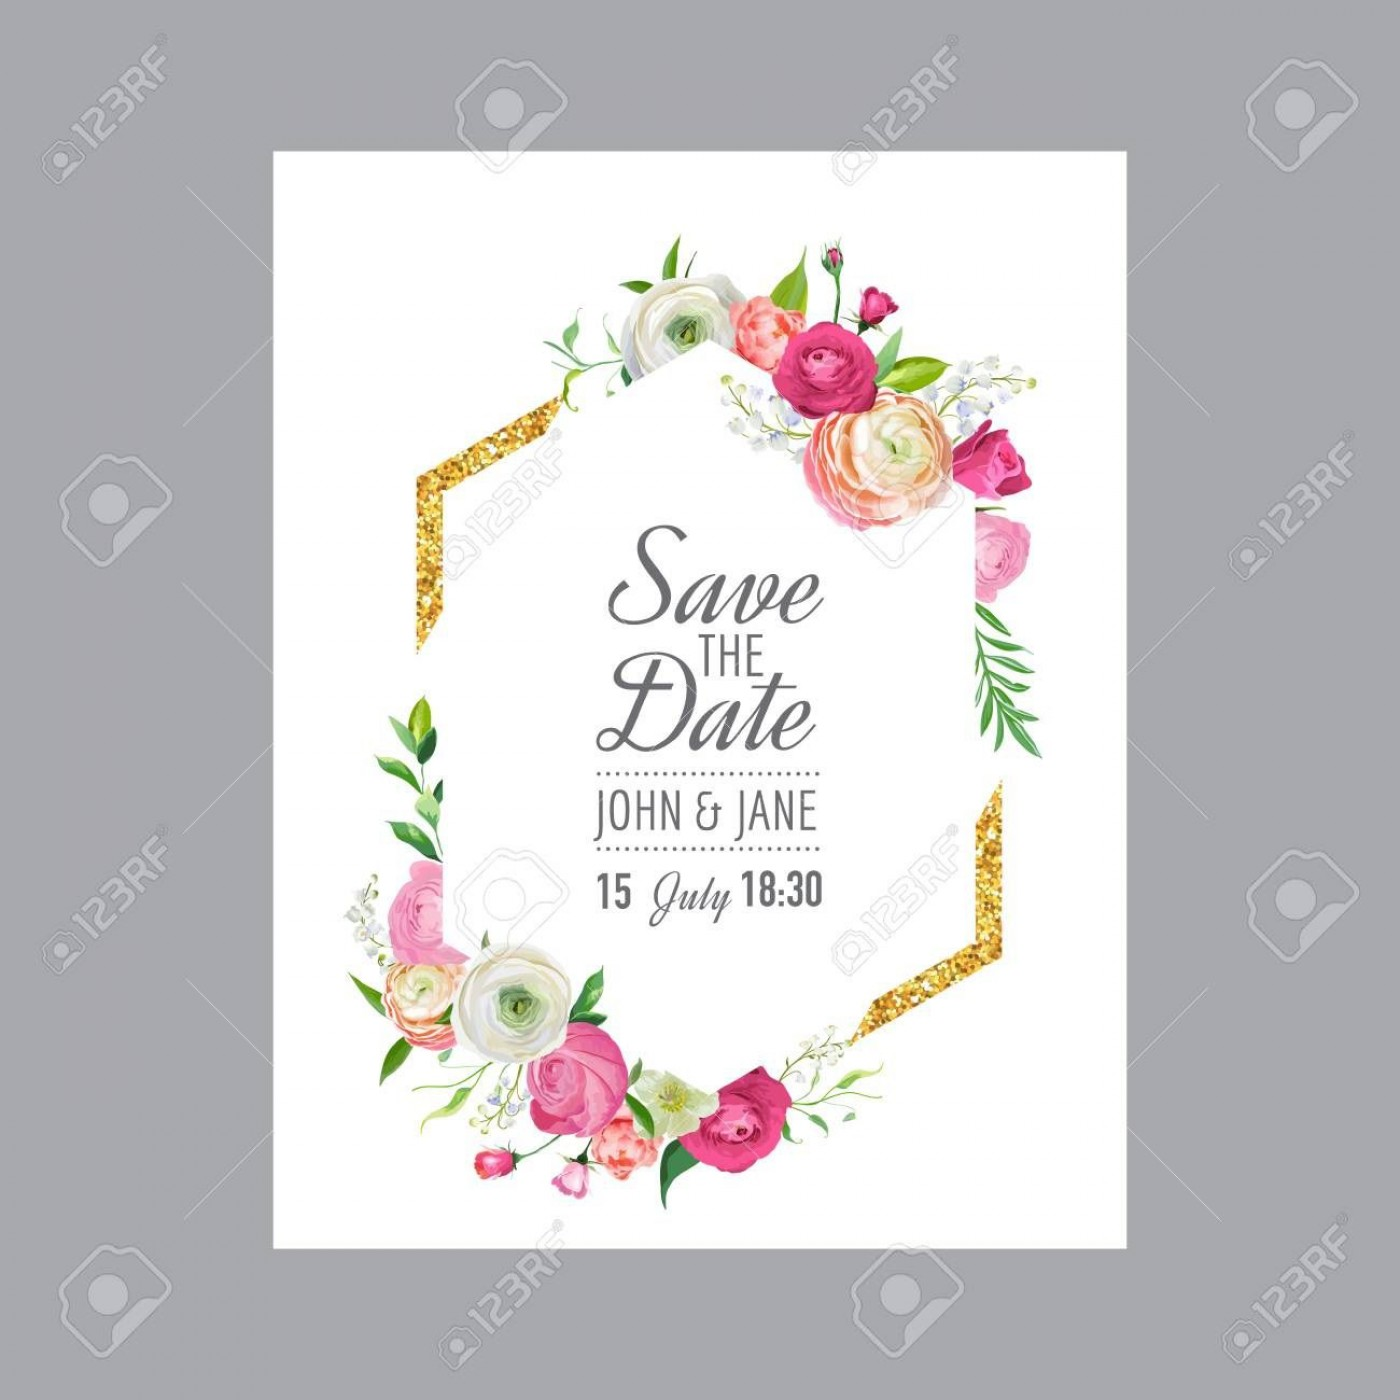 005 Imposing Save The Date Birthday Card Template High Definition  Free Printable1400